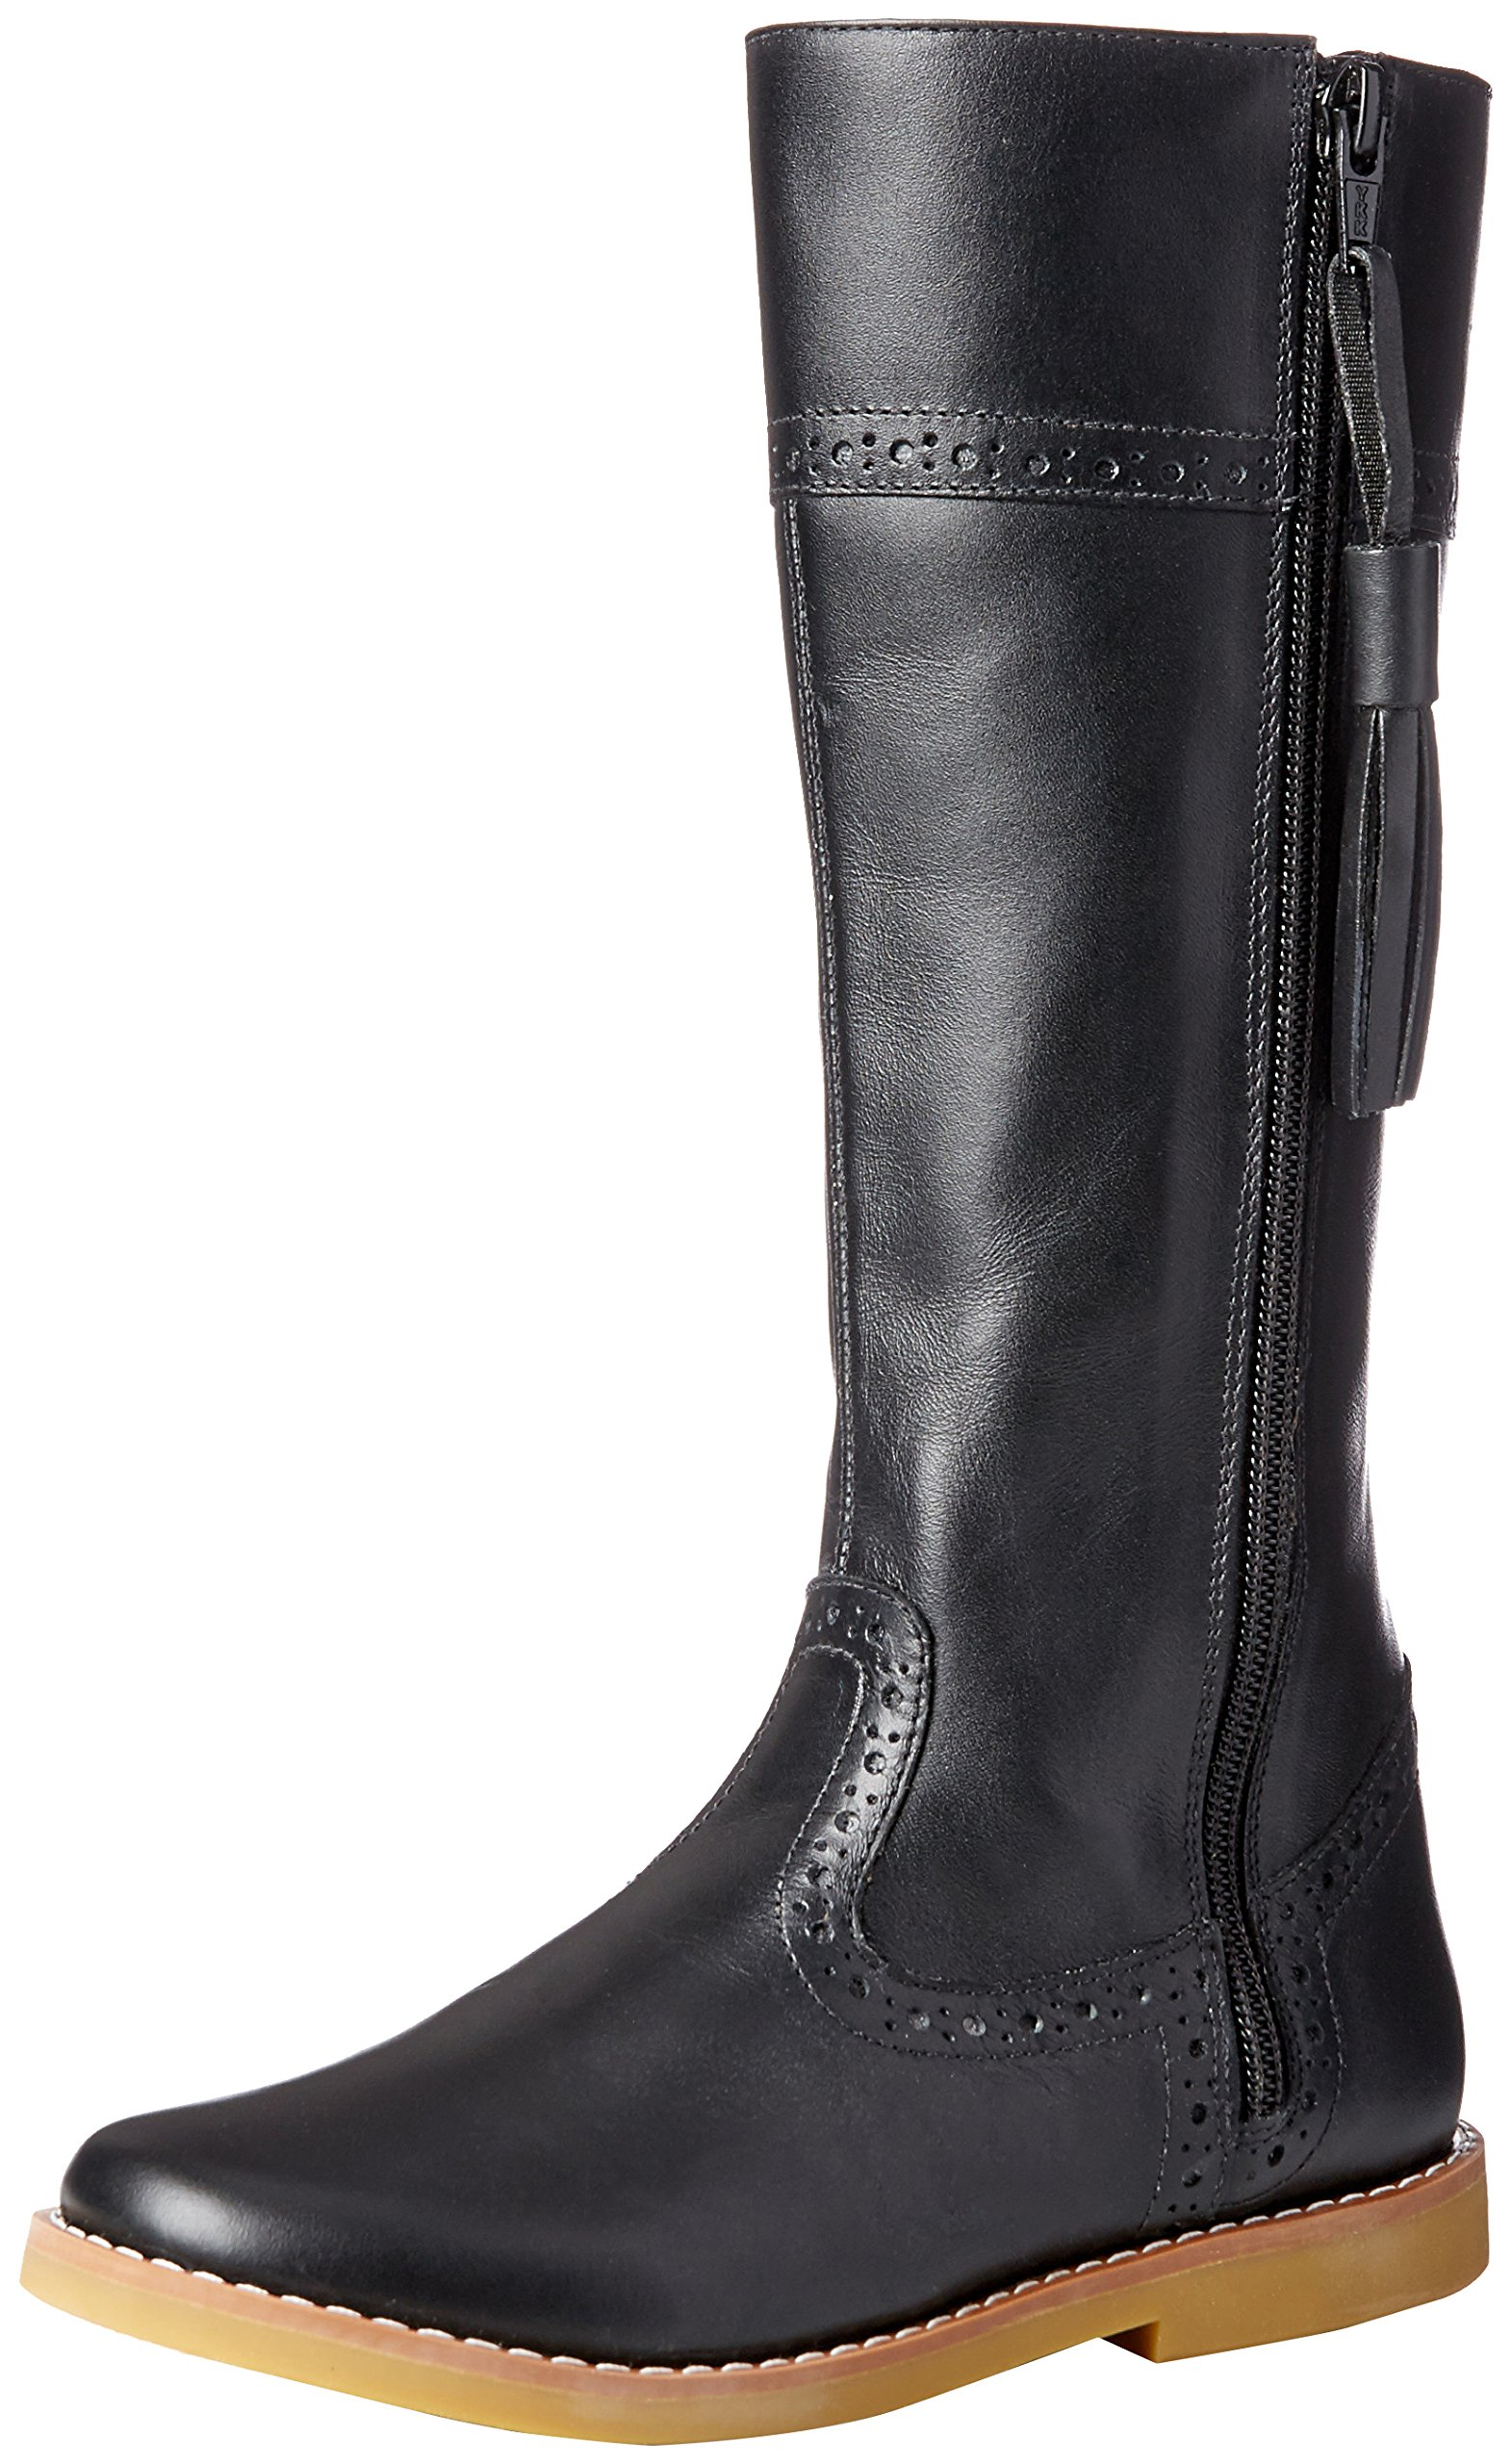 Elephantito Girls' Riding Fashion Boot, Black, 9 M US Toddler